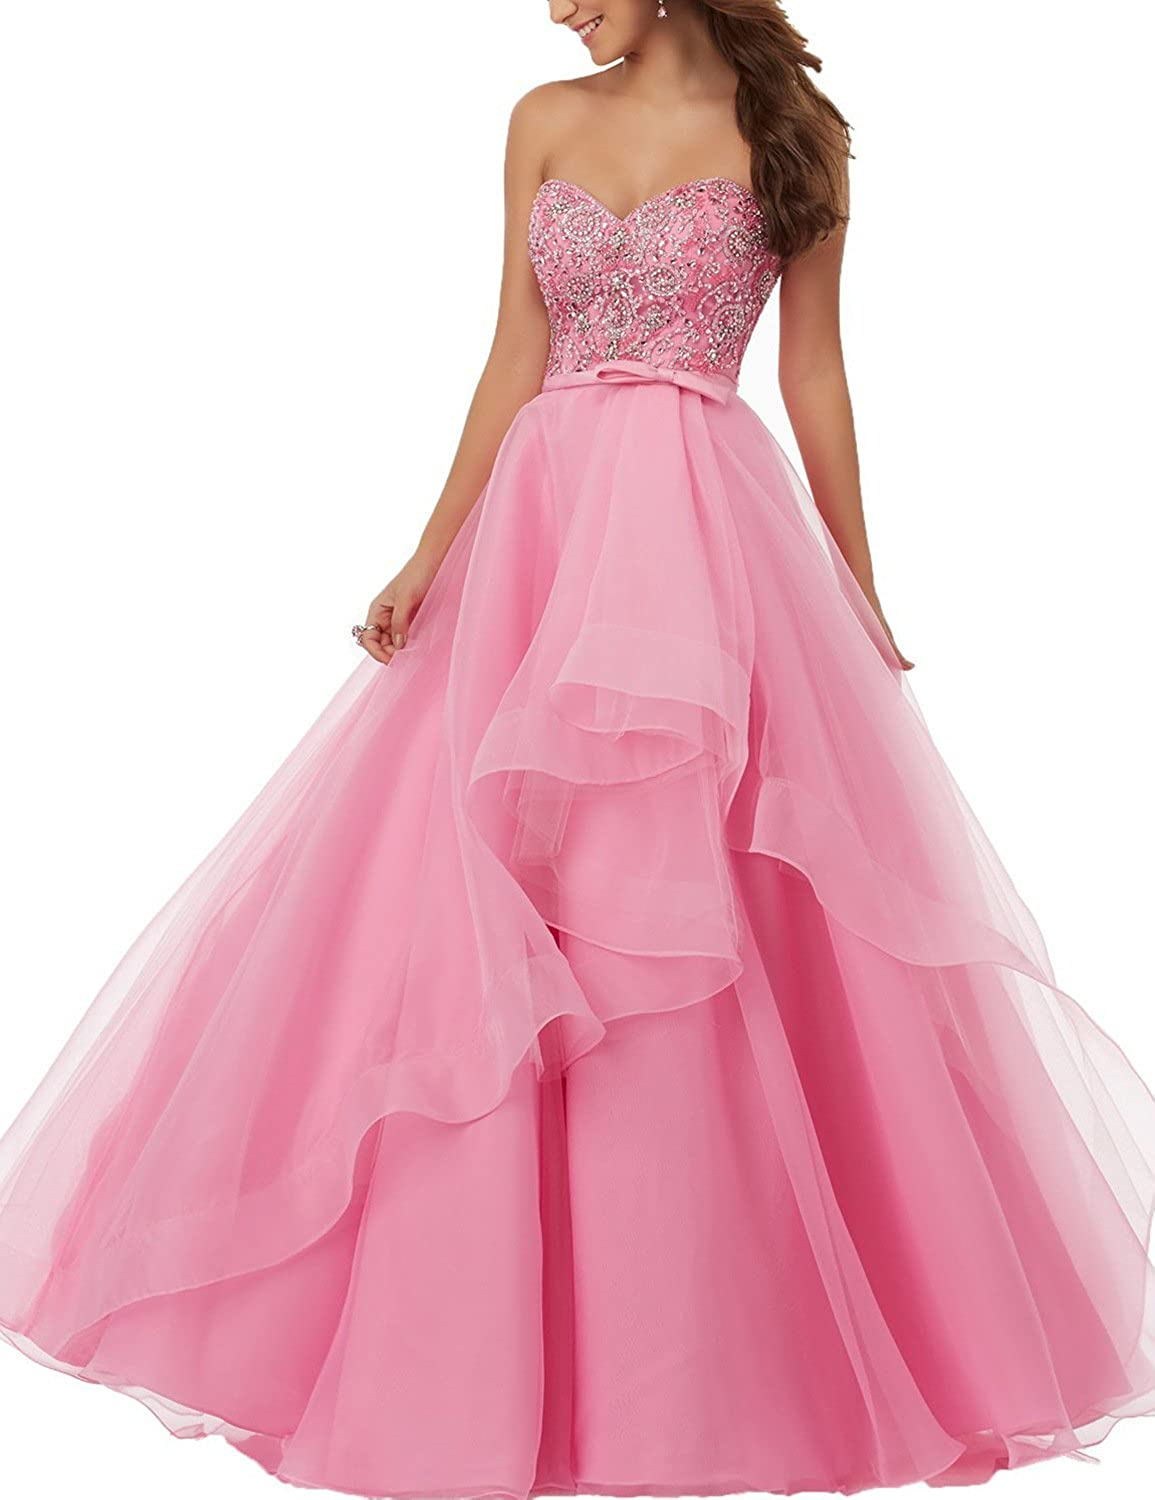 Yiweir Women's A Line Prom Dresses 2018 Long Tulle Satin Beads Formal Gown P153